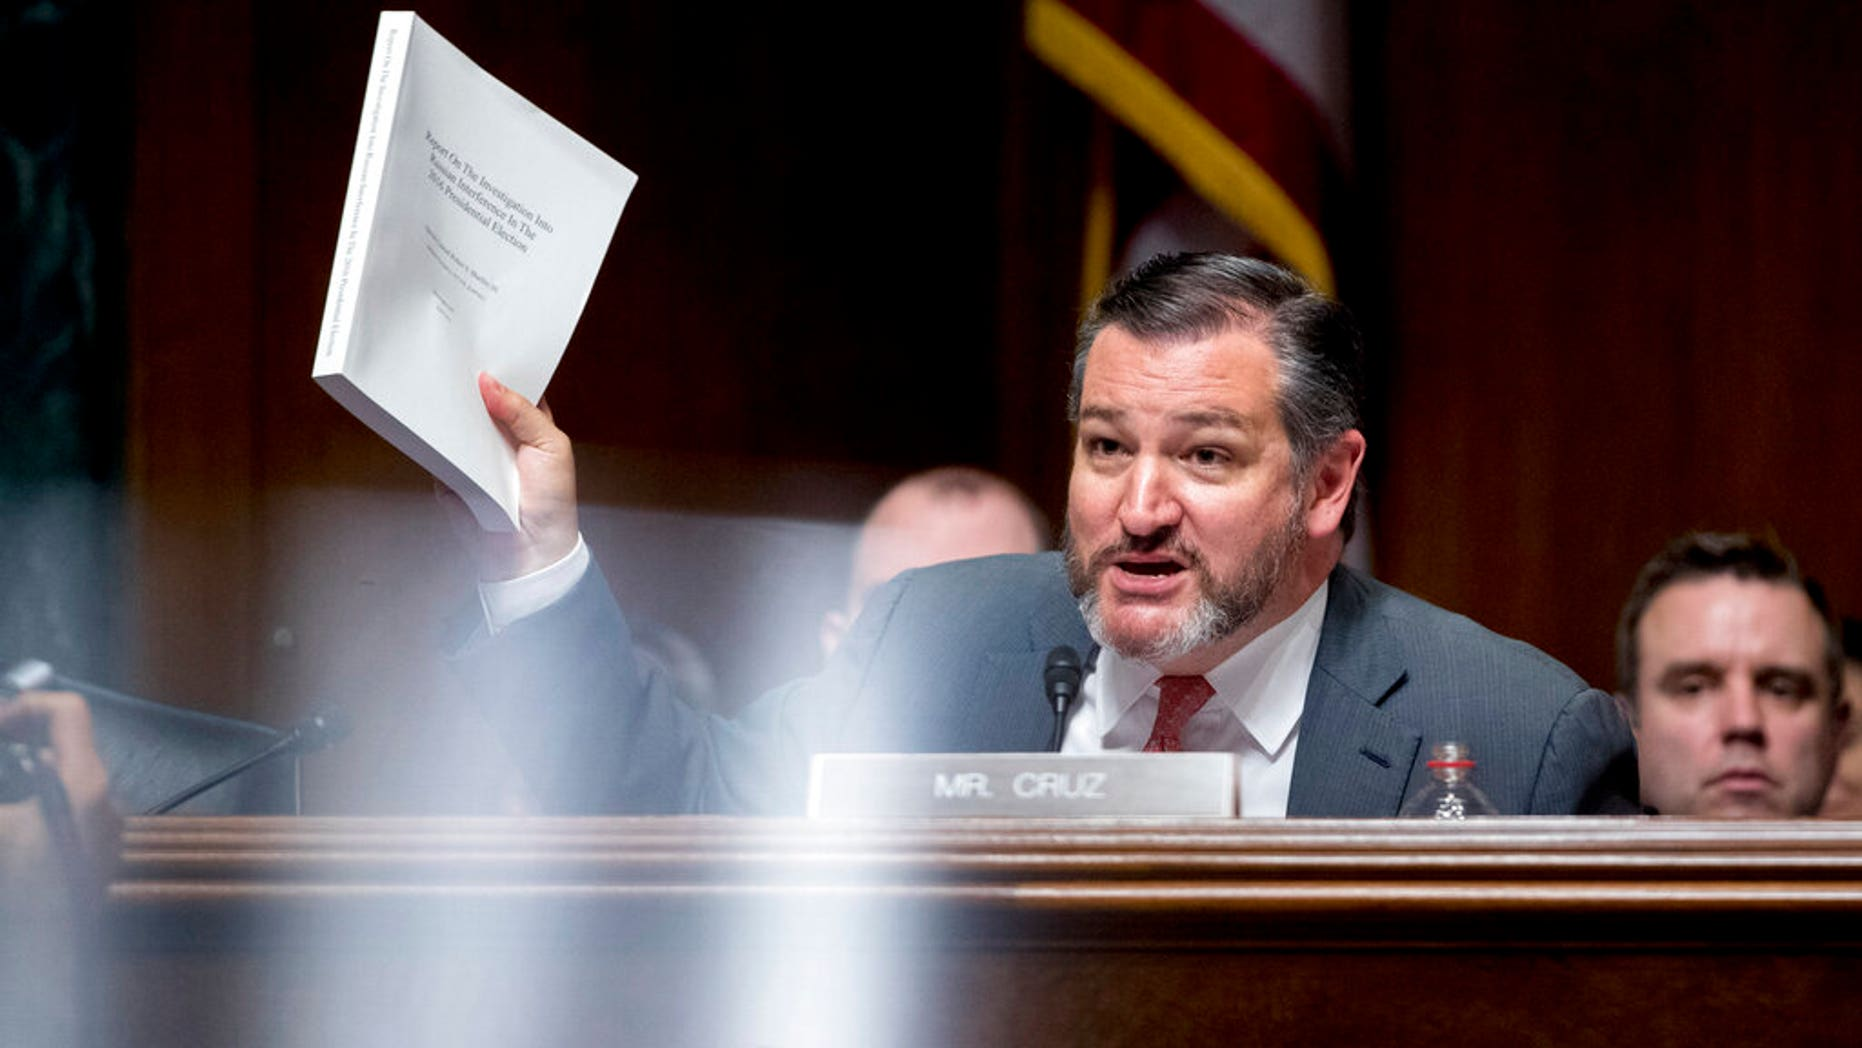 Sen. Ted Cruz, R-Texas, holds up a copy of the Mueller report as he questions Attorney General William Barr during a Senate Judiciary Committee hearing on Capitol Hill in Washington.